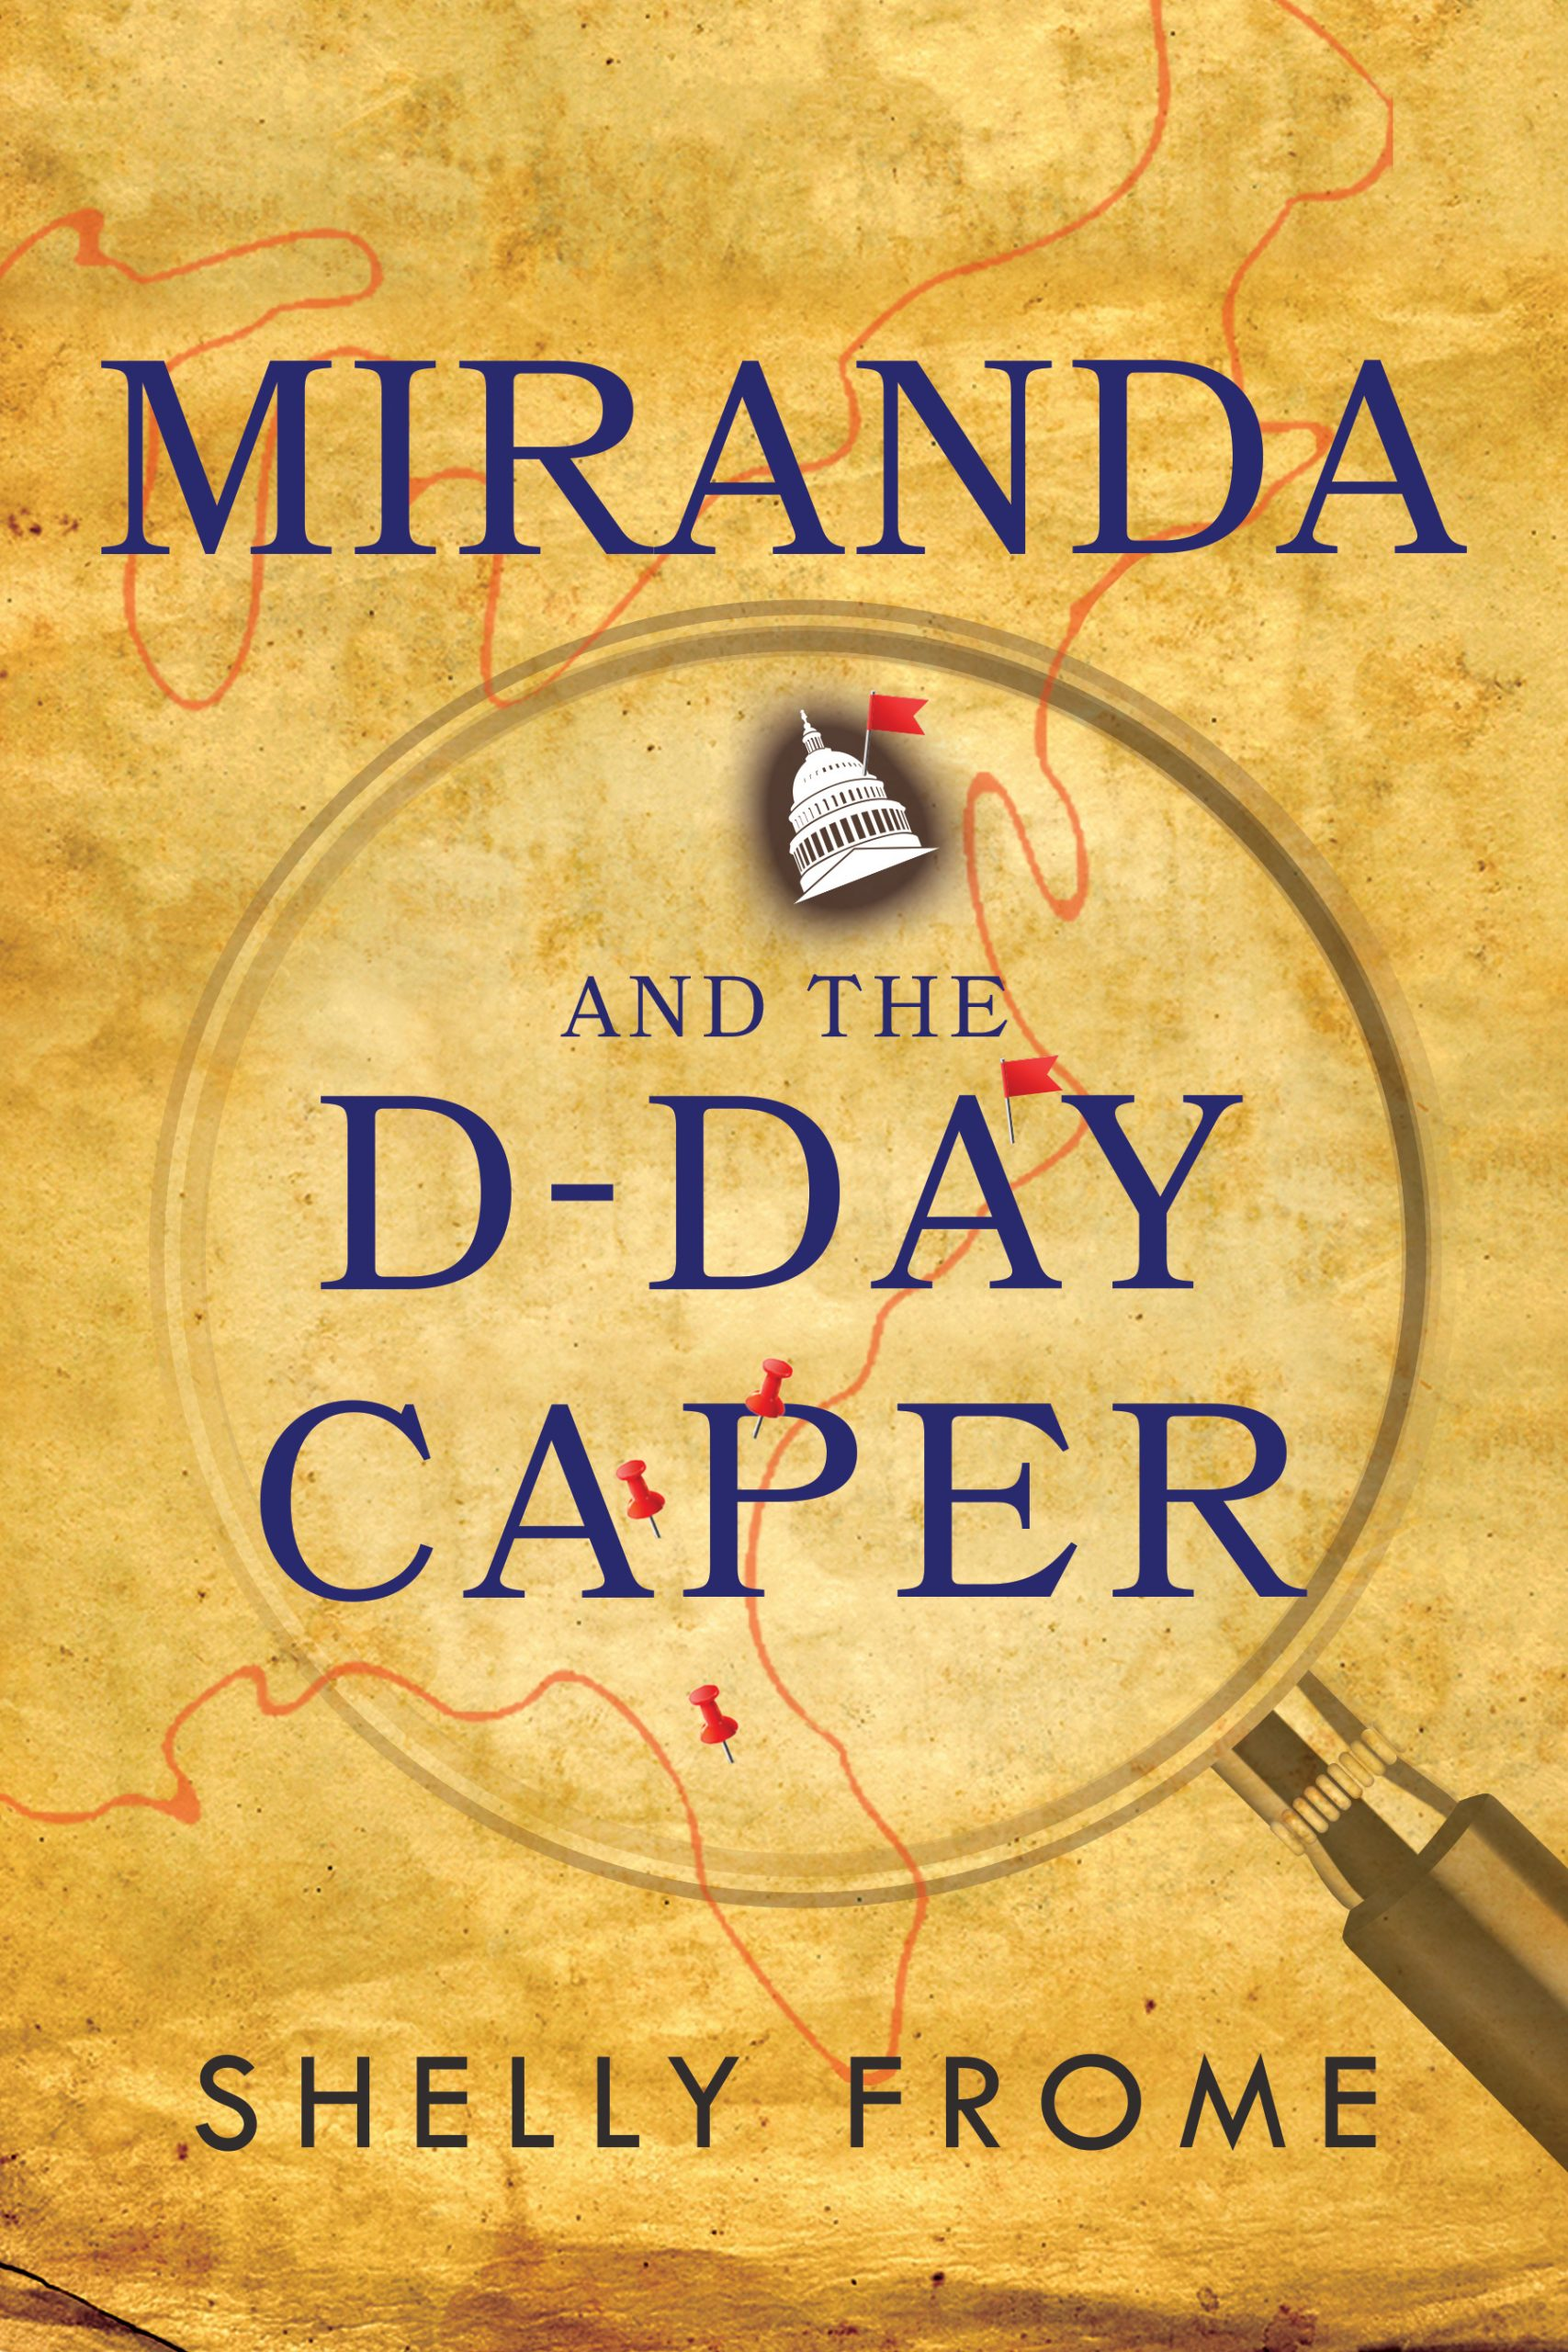 Miranda and the D-Day Caper by Shelly Frome